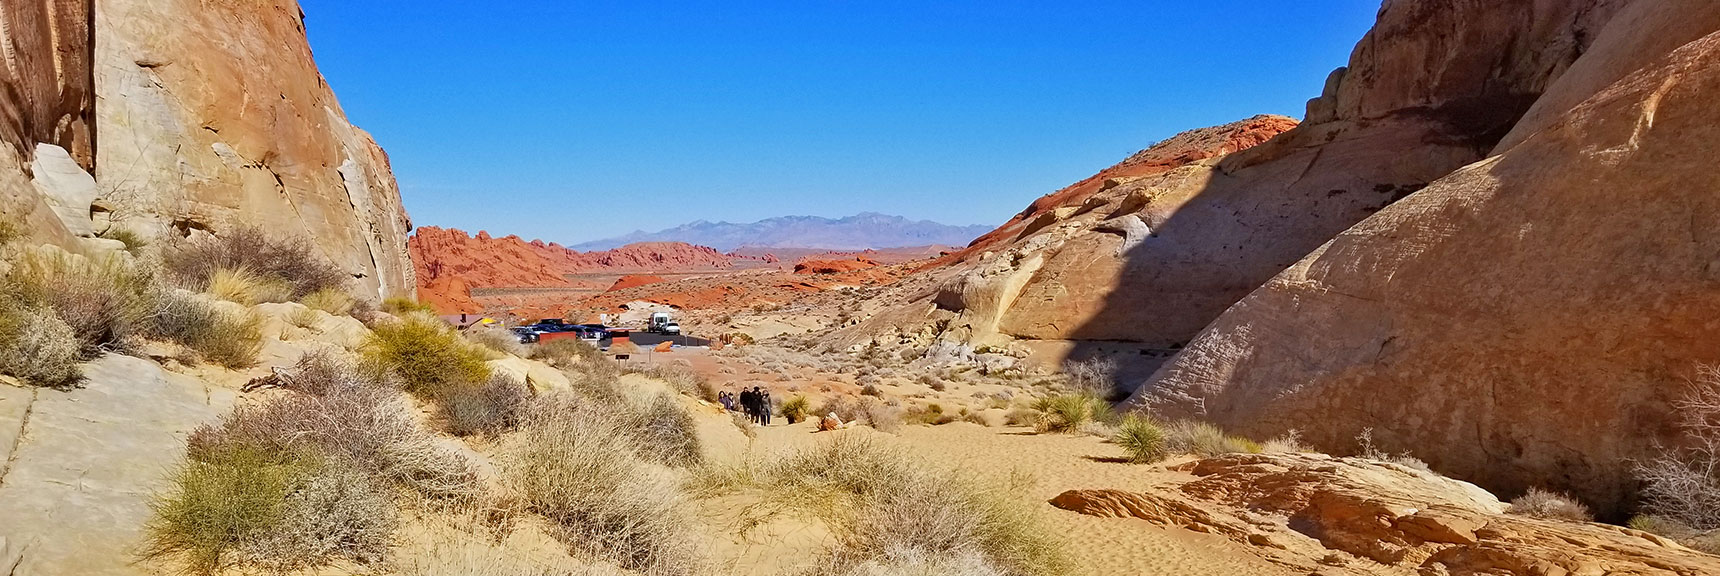 Looking Back Toward the Trailhead for White Domes Loop Trail in Valley of Fire State Park, Nevada